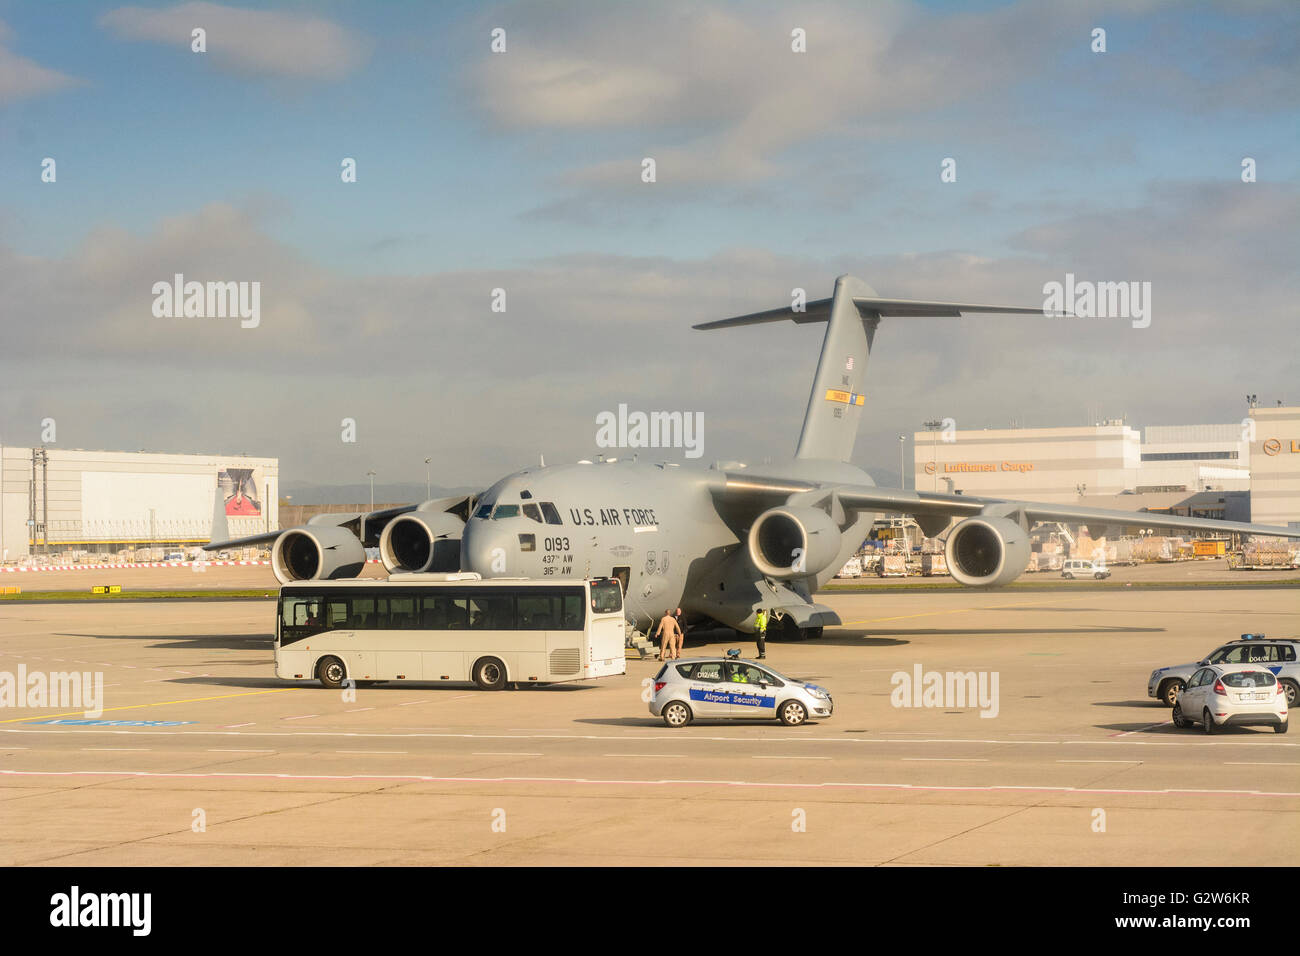 Frankfurt Airport : US Air Force Boeing C - 17A Globemaster III strategic airlifter on the apron, Germany, Hessen, - Stock Image